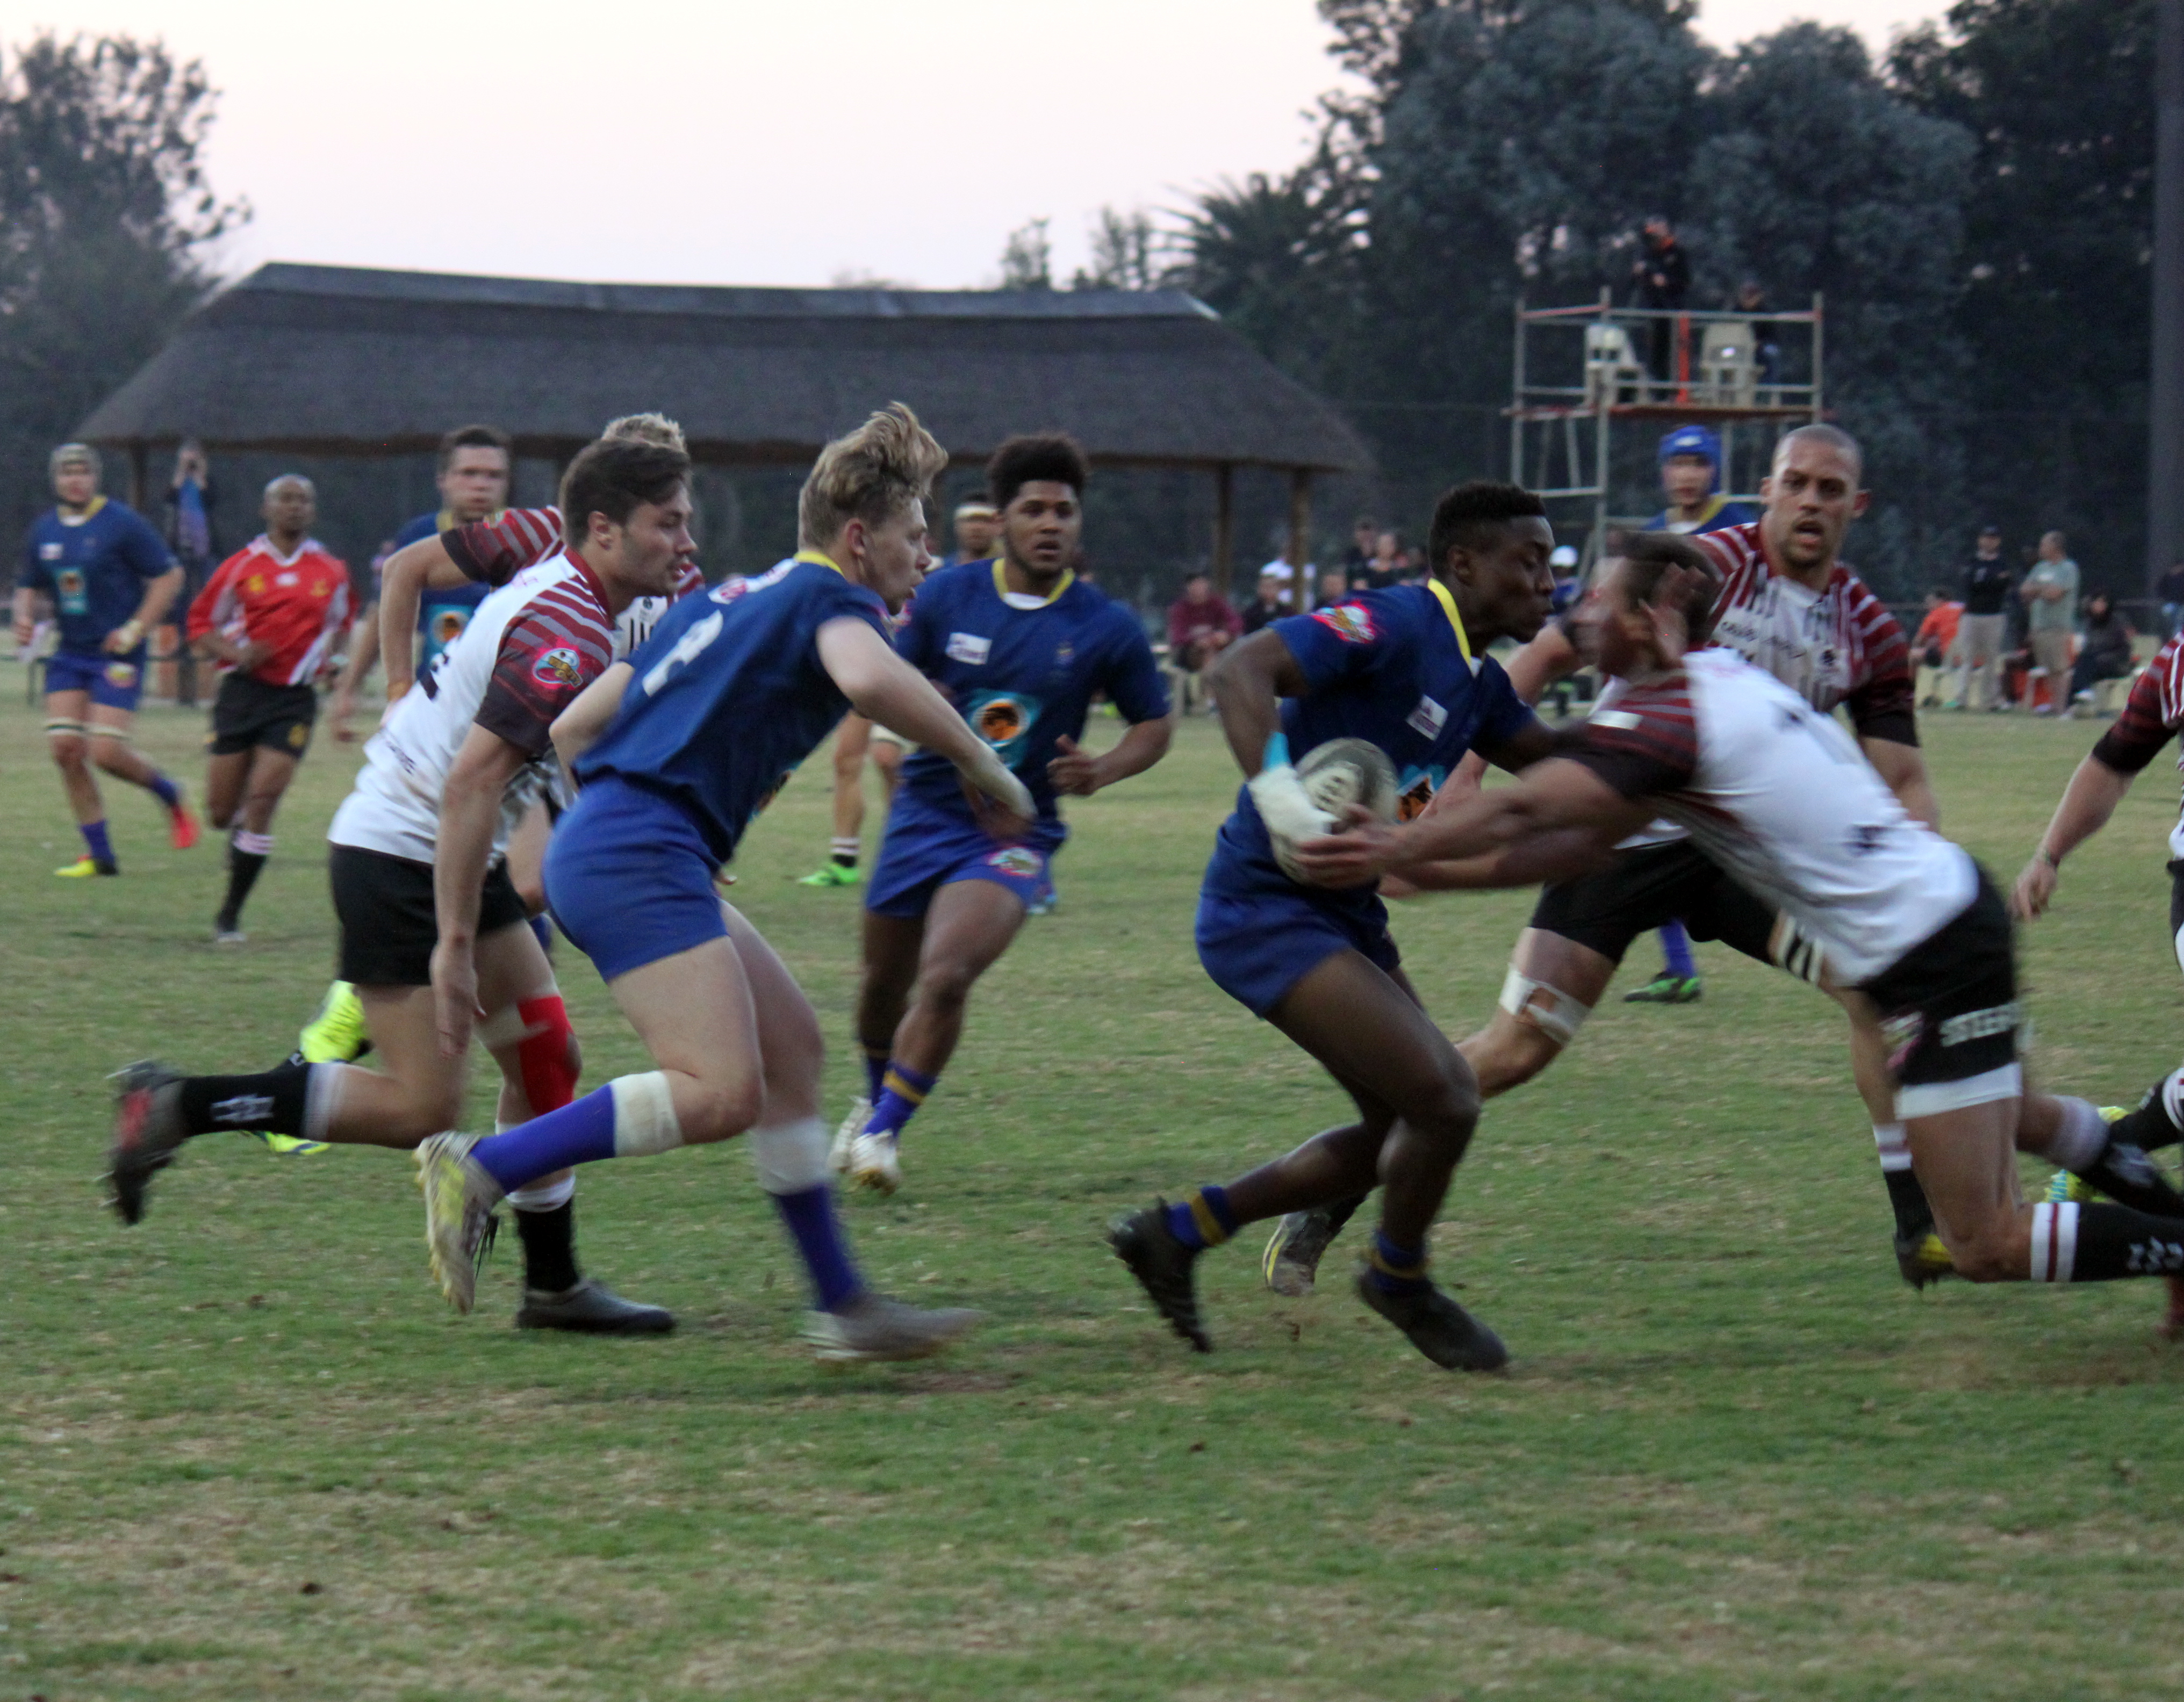 Wits rugby makes top four in Pirates Grand Challenge